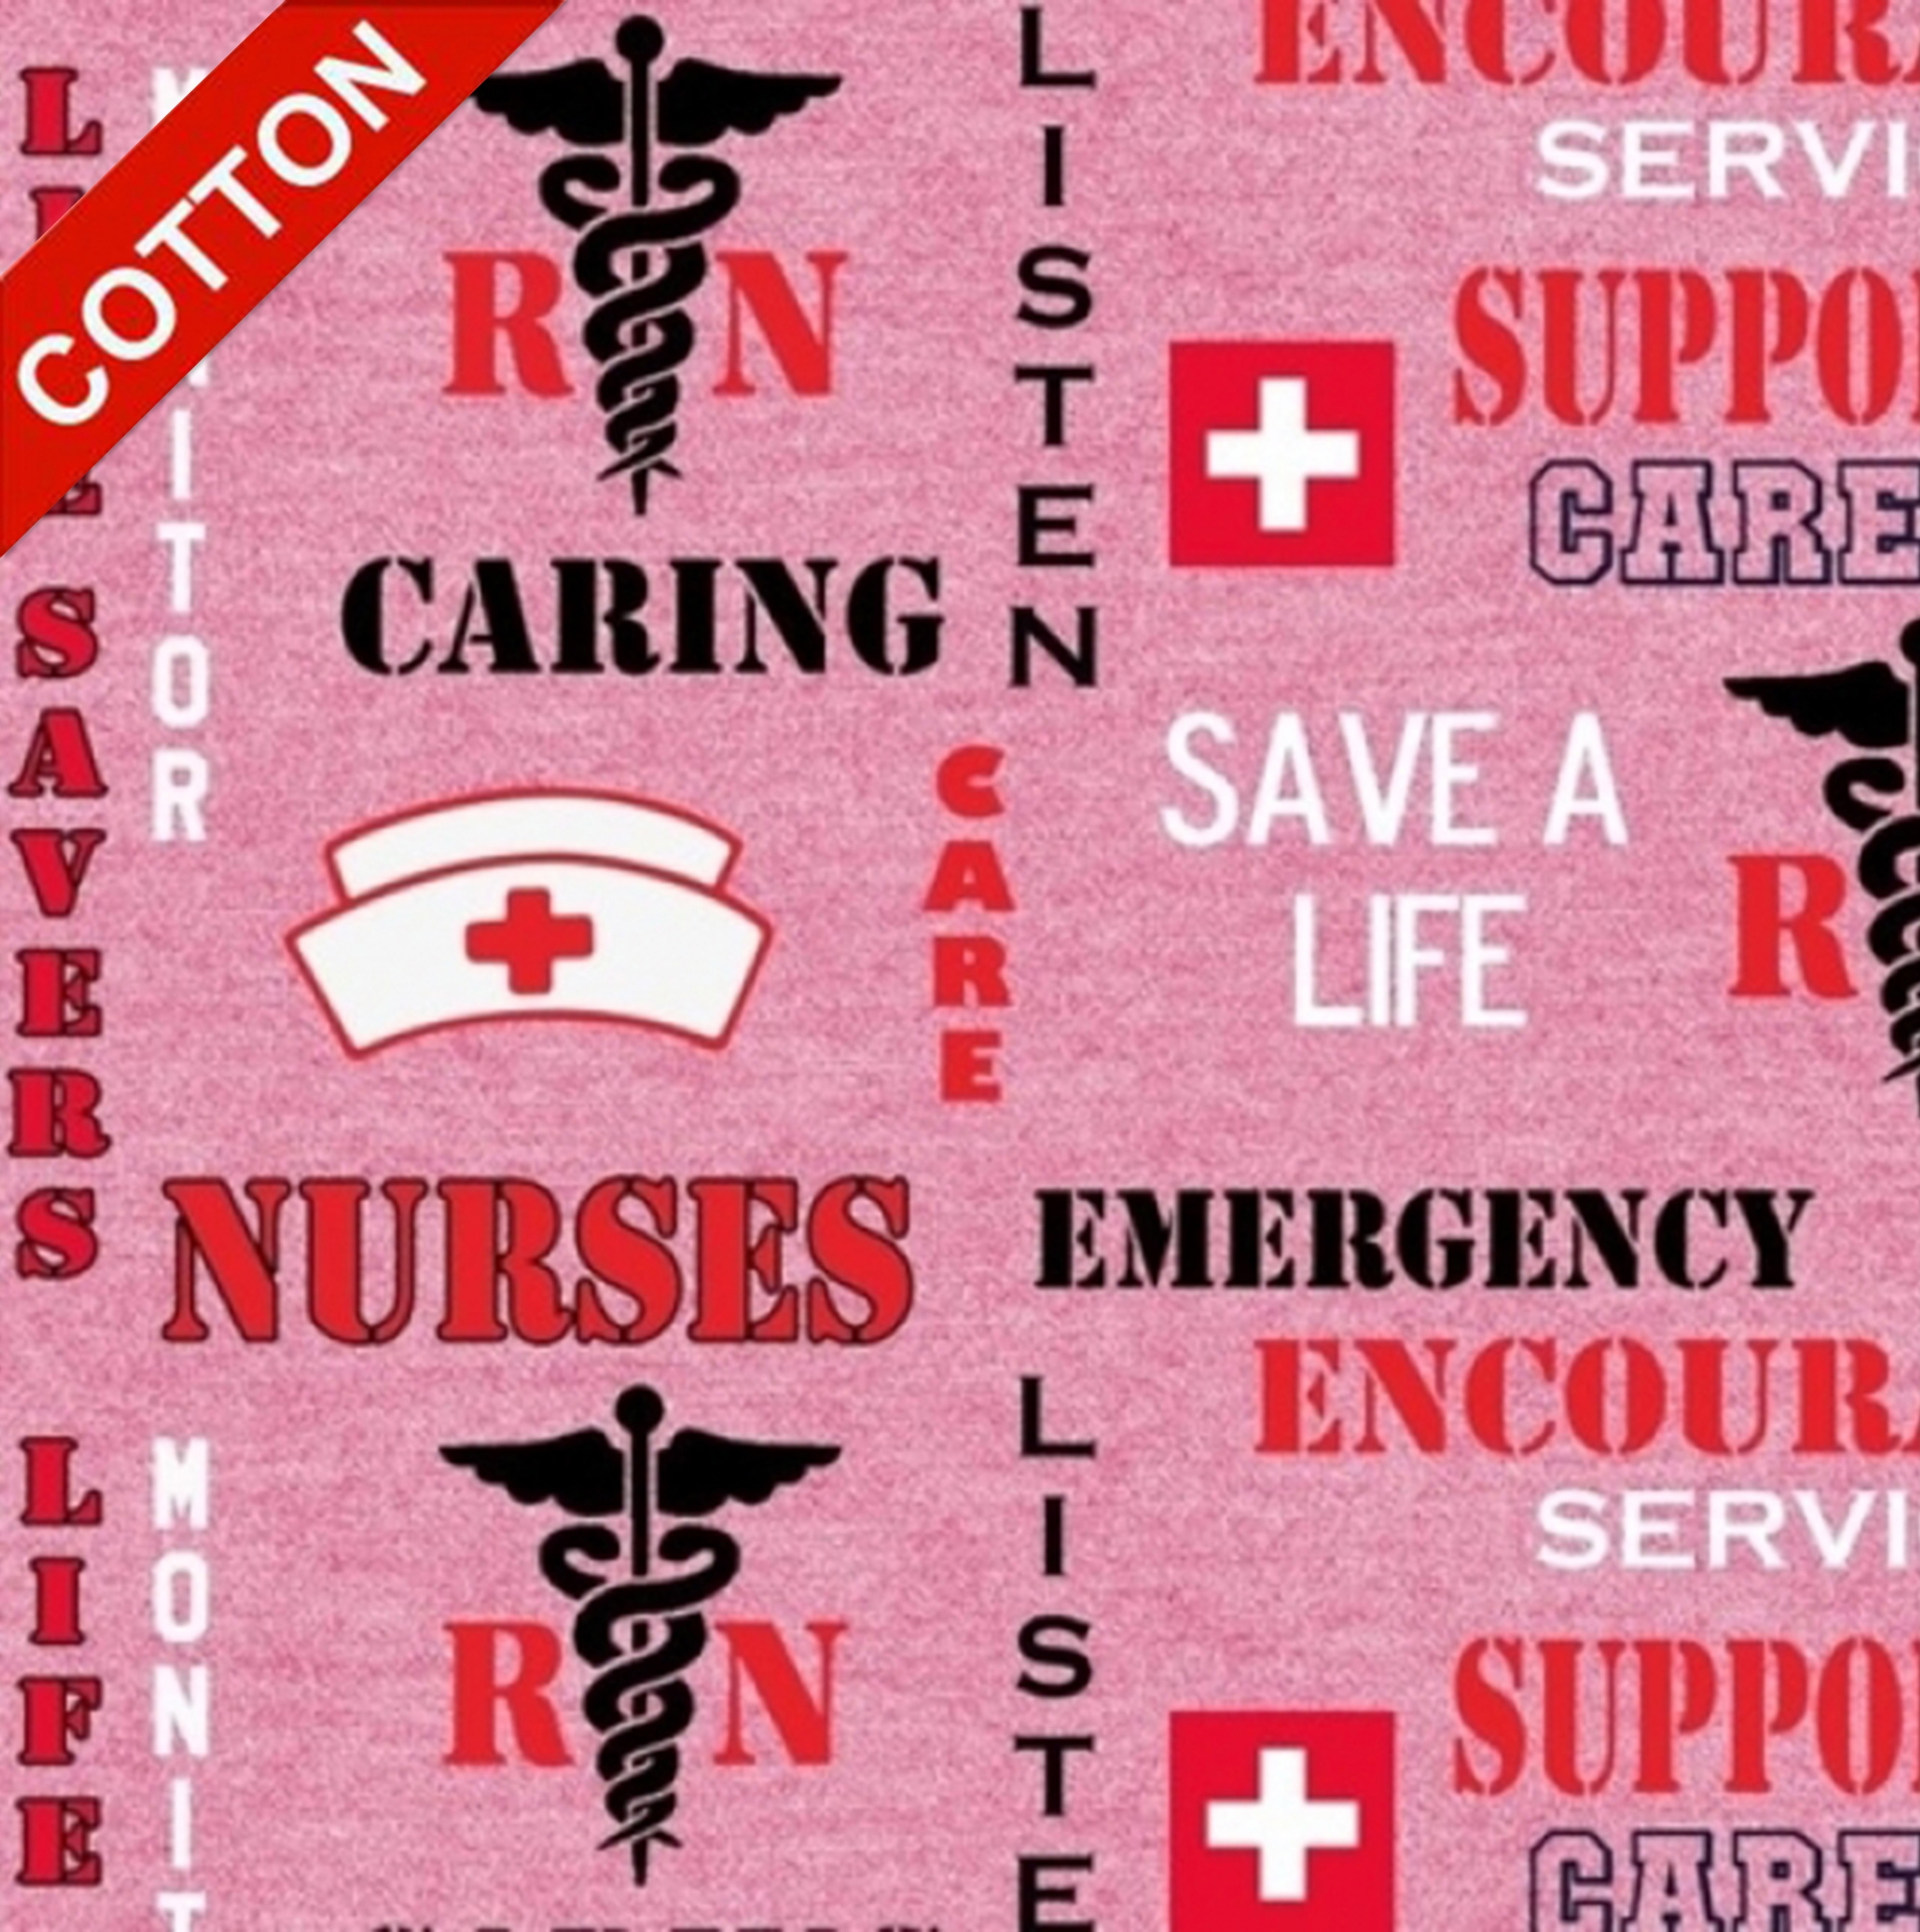 Nurses Emergency Support Medical Cotton Fabric